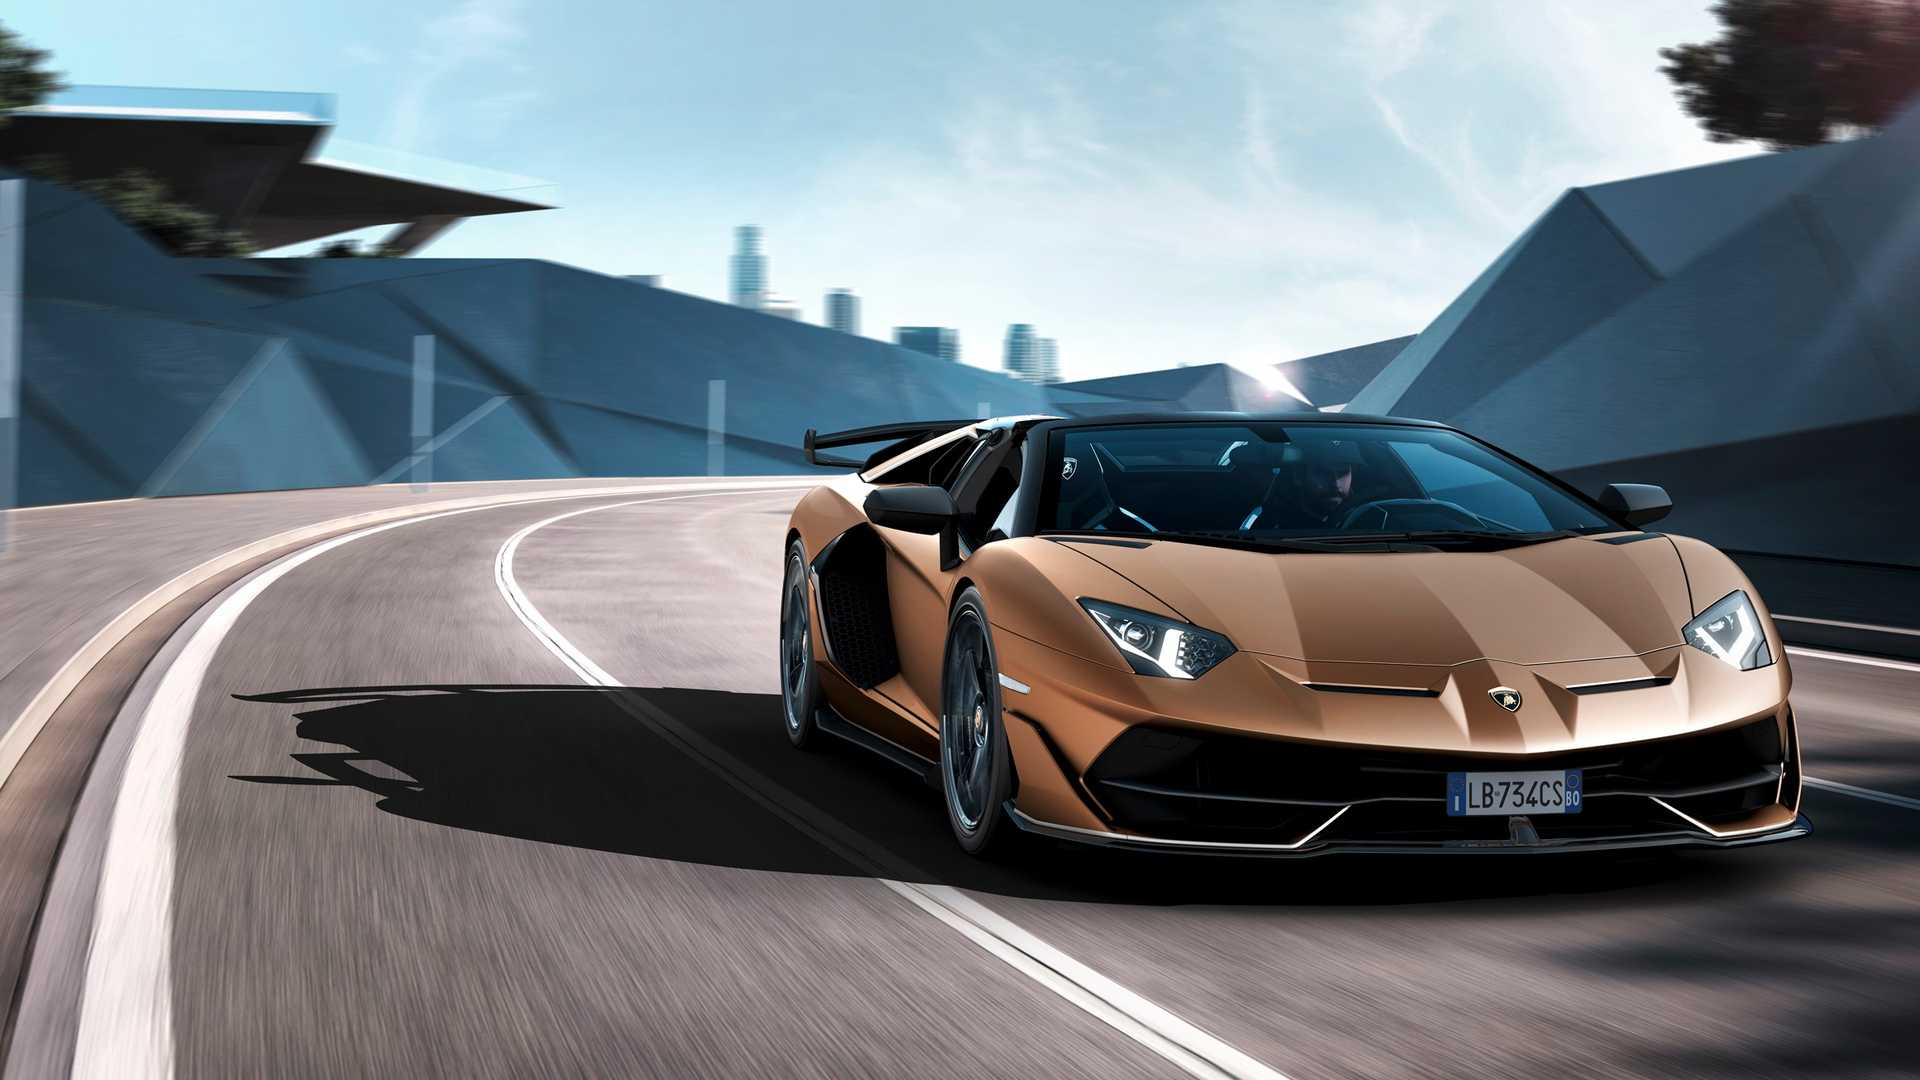 2020 Lamborghini Aventador SVJ Roadster Front Three-Quarter Wallpapers (1)